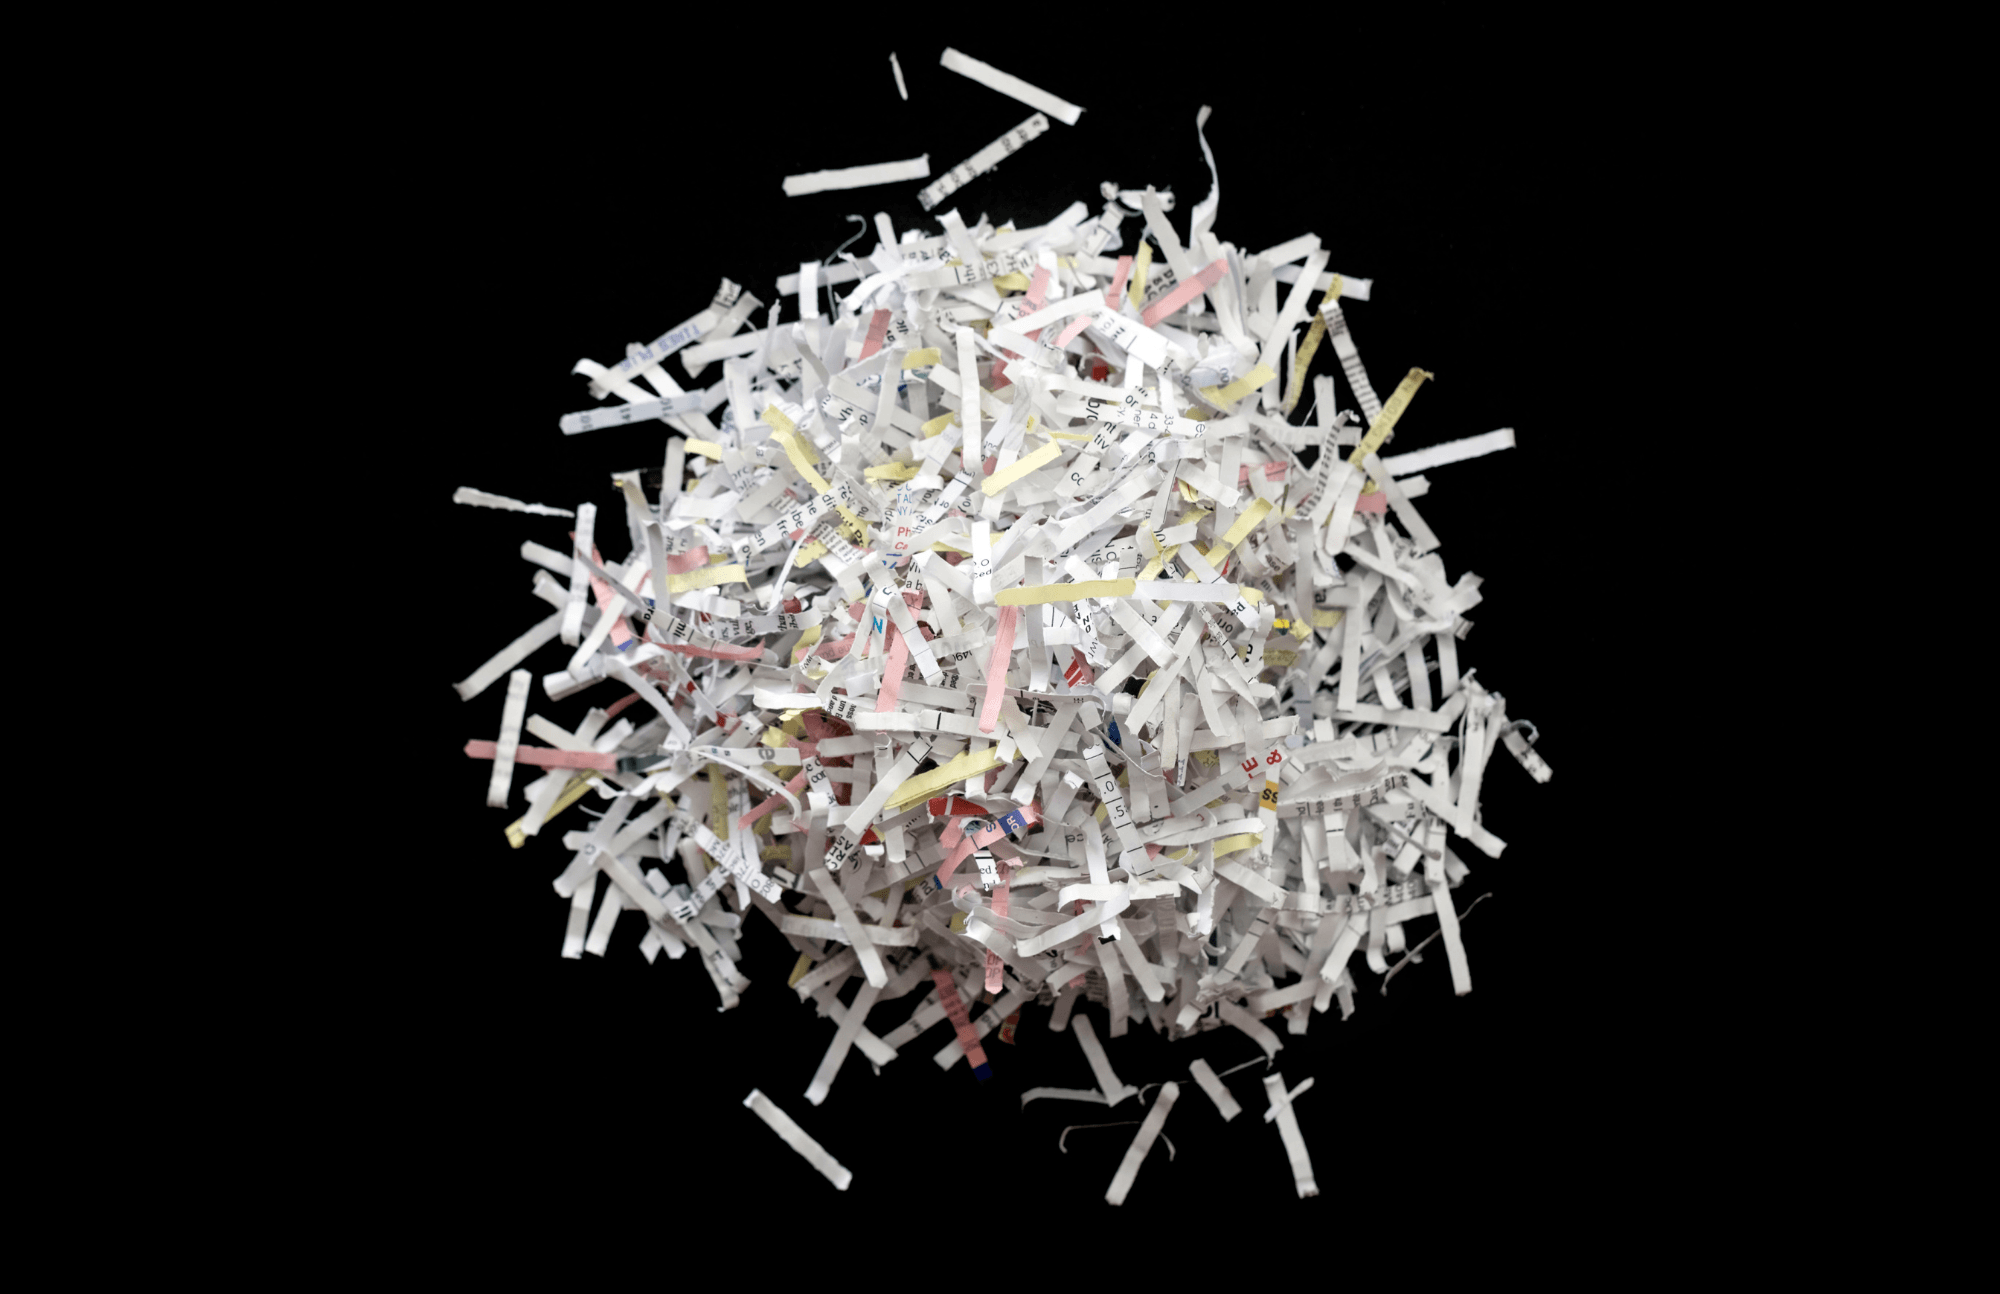 Document Shredding (PNG)